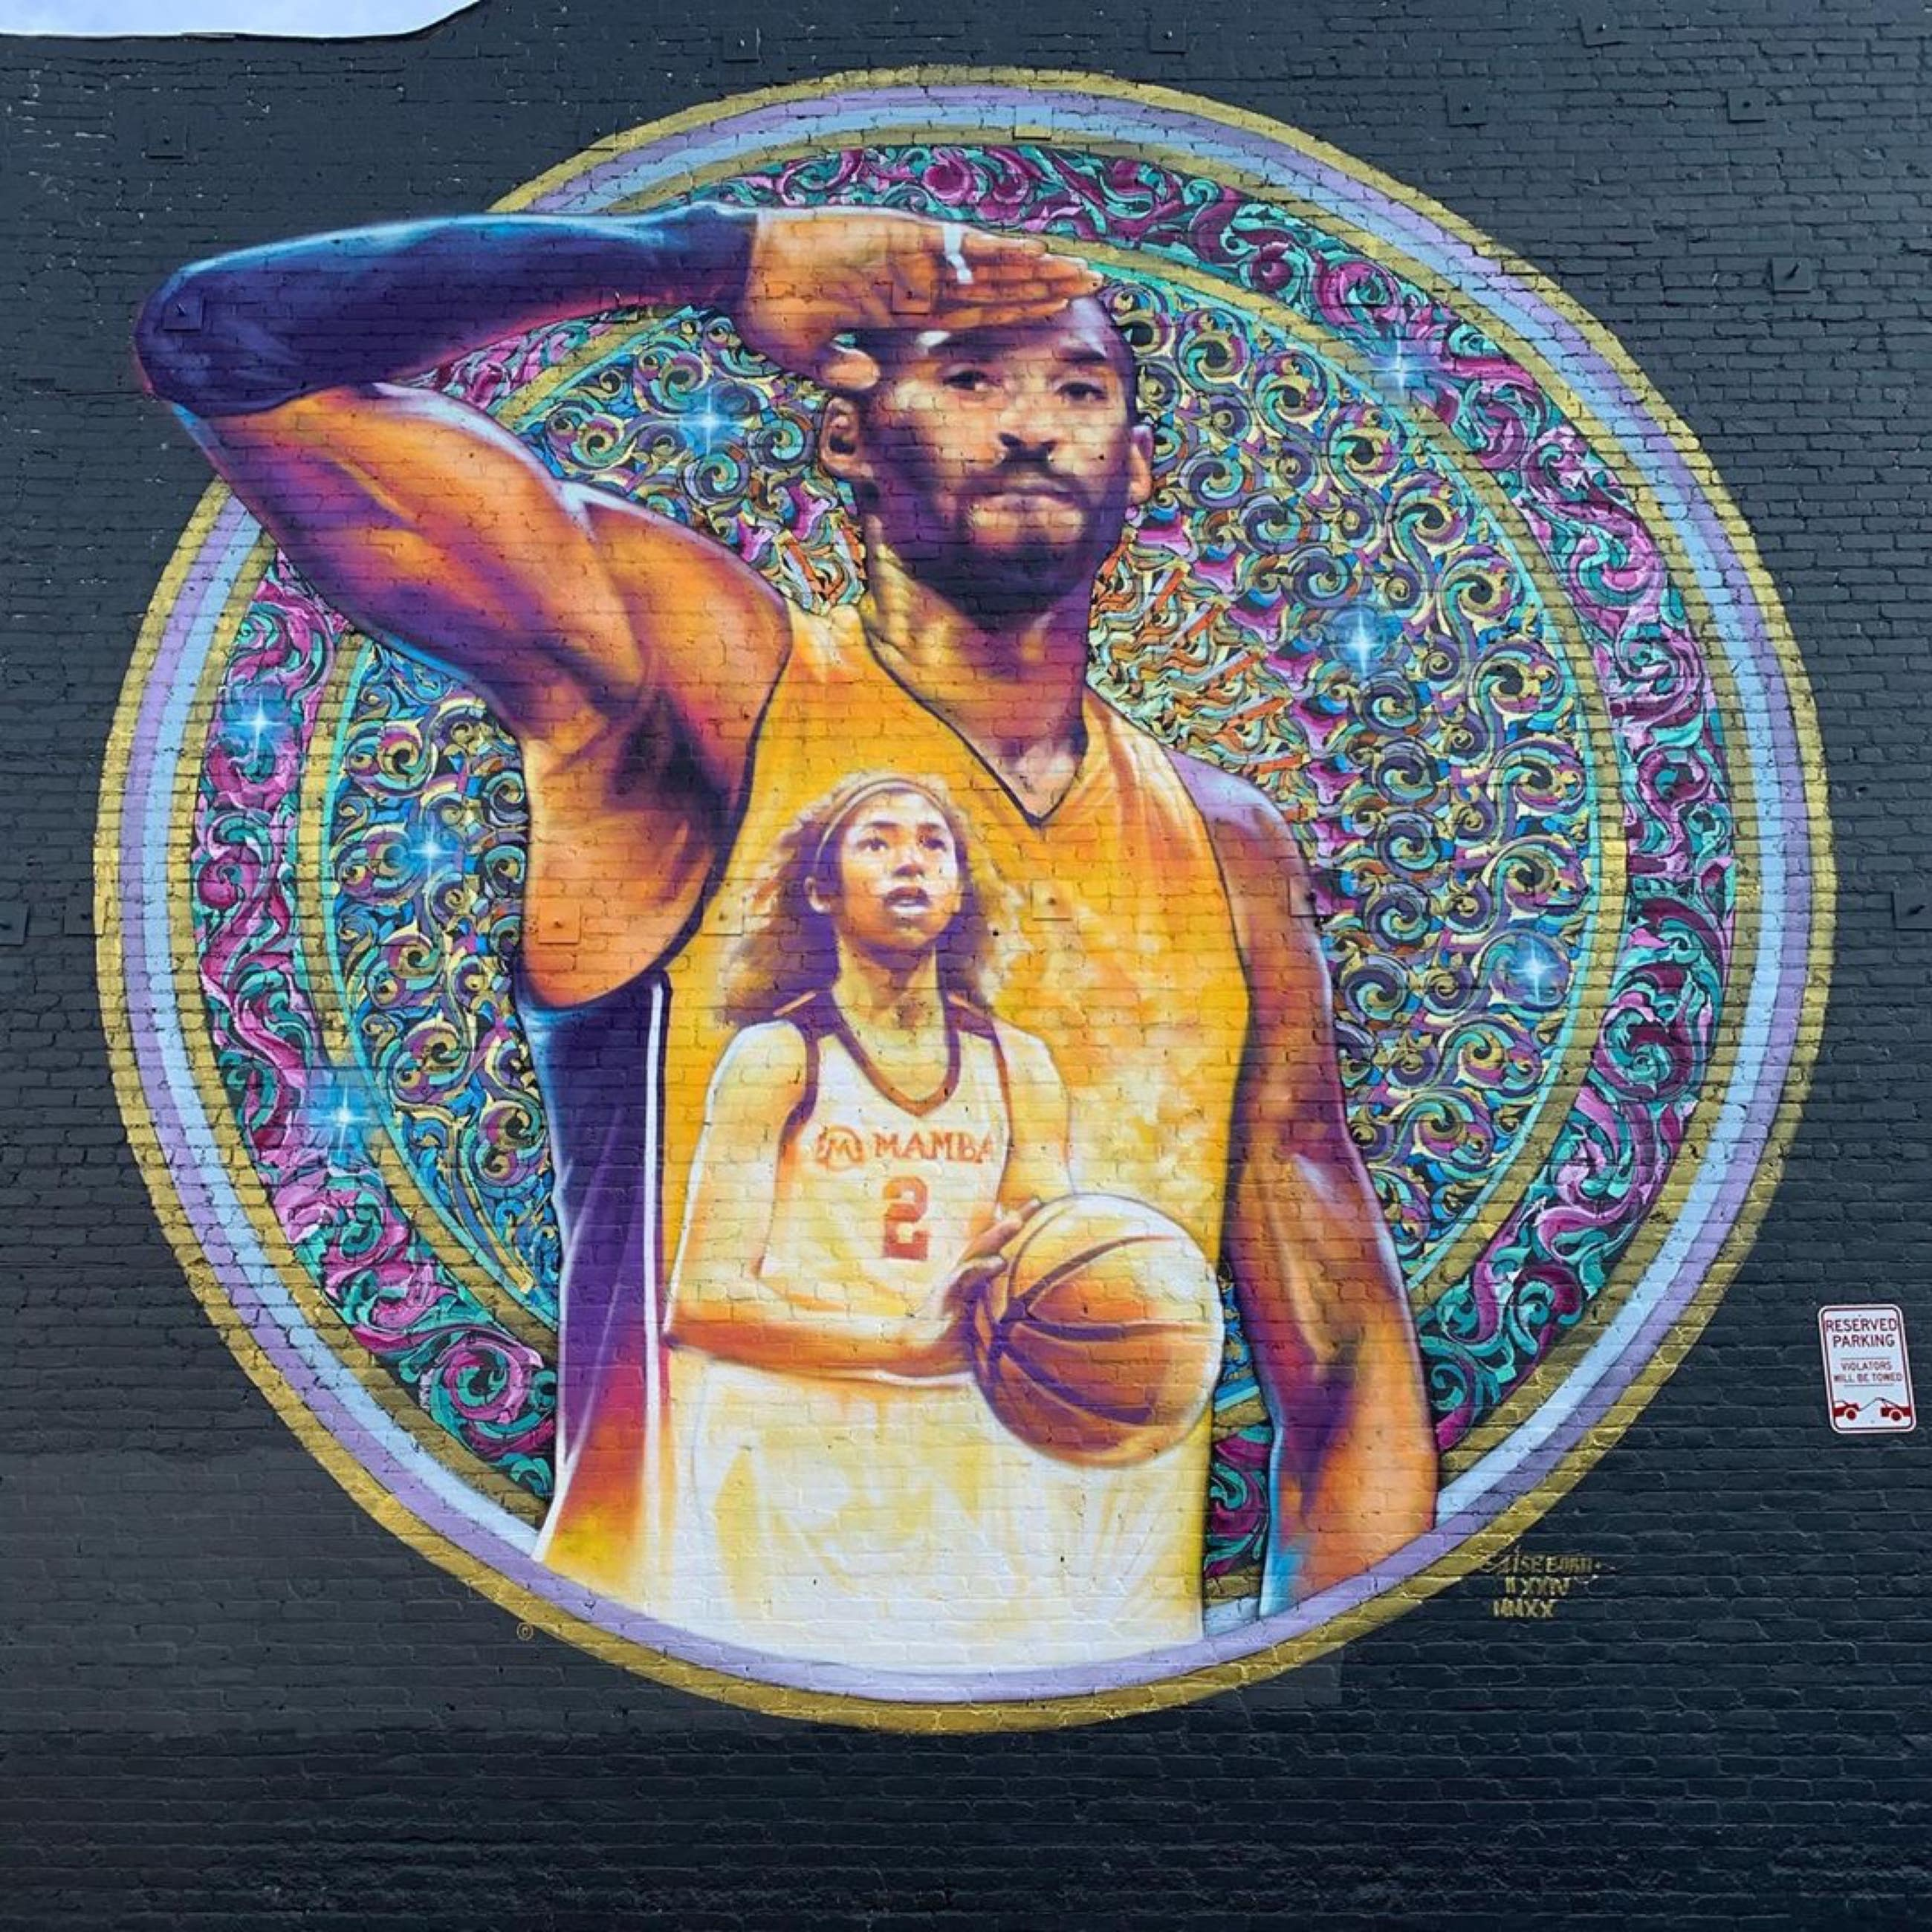 Kobe and Gianna Bryant mural by AISEBORN in Downtown LA